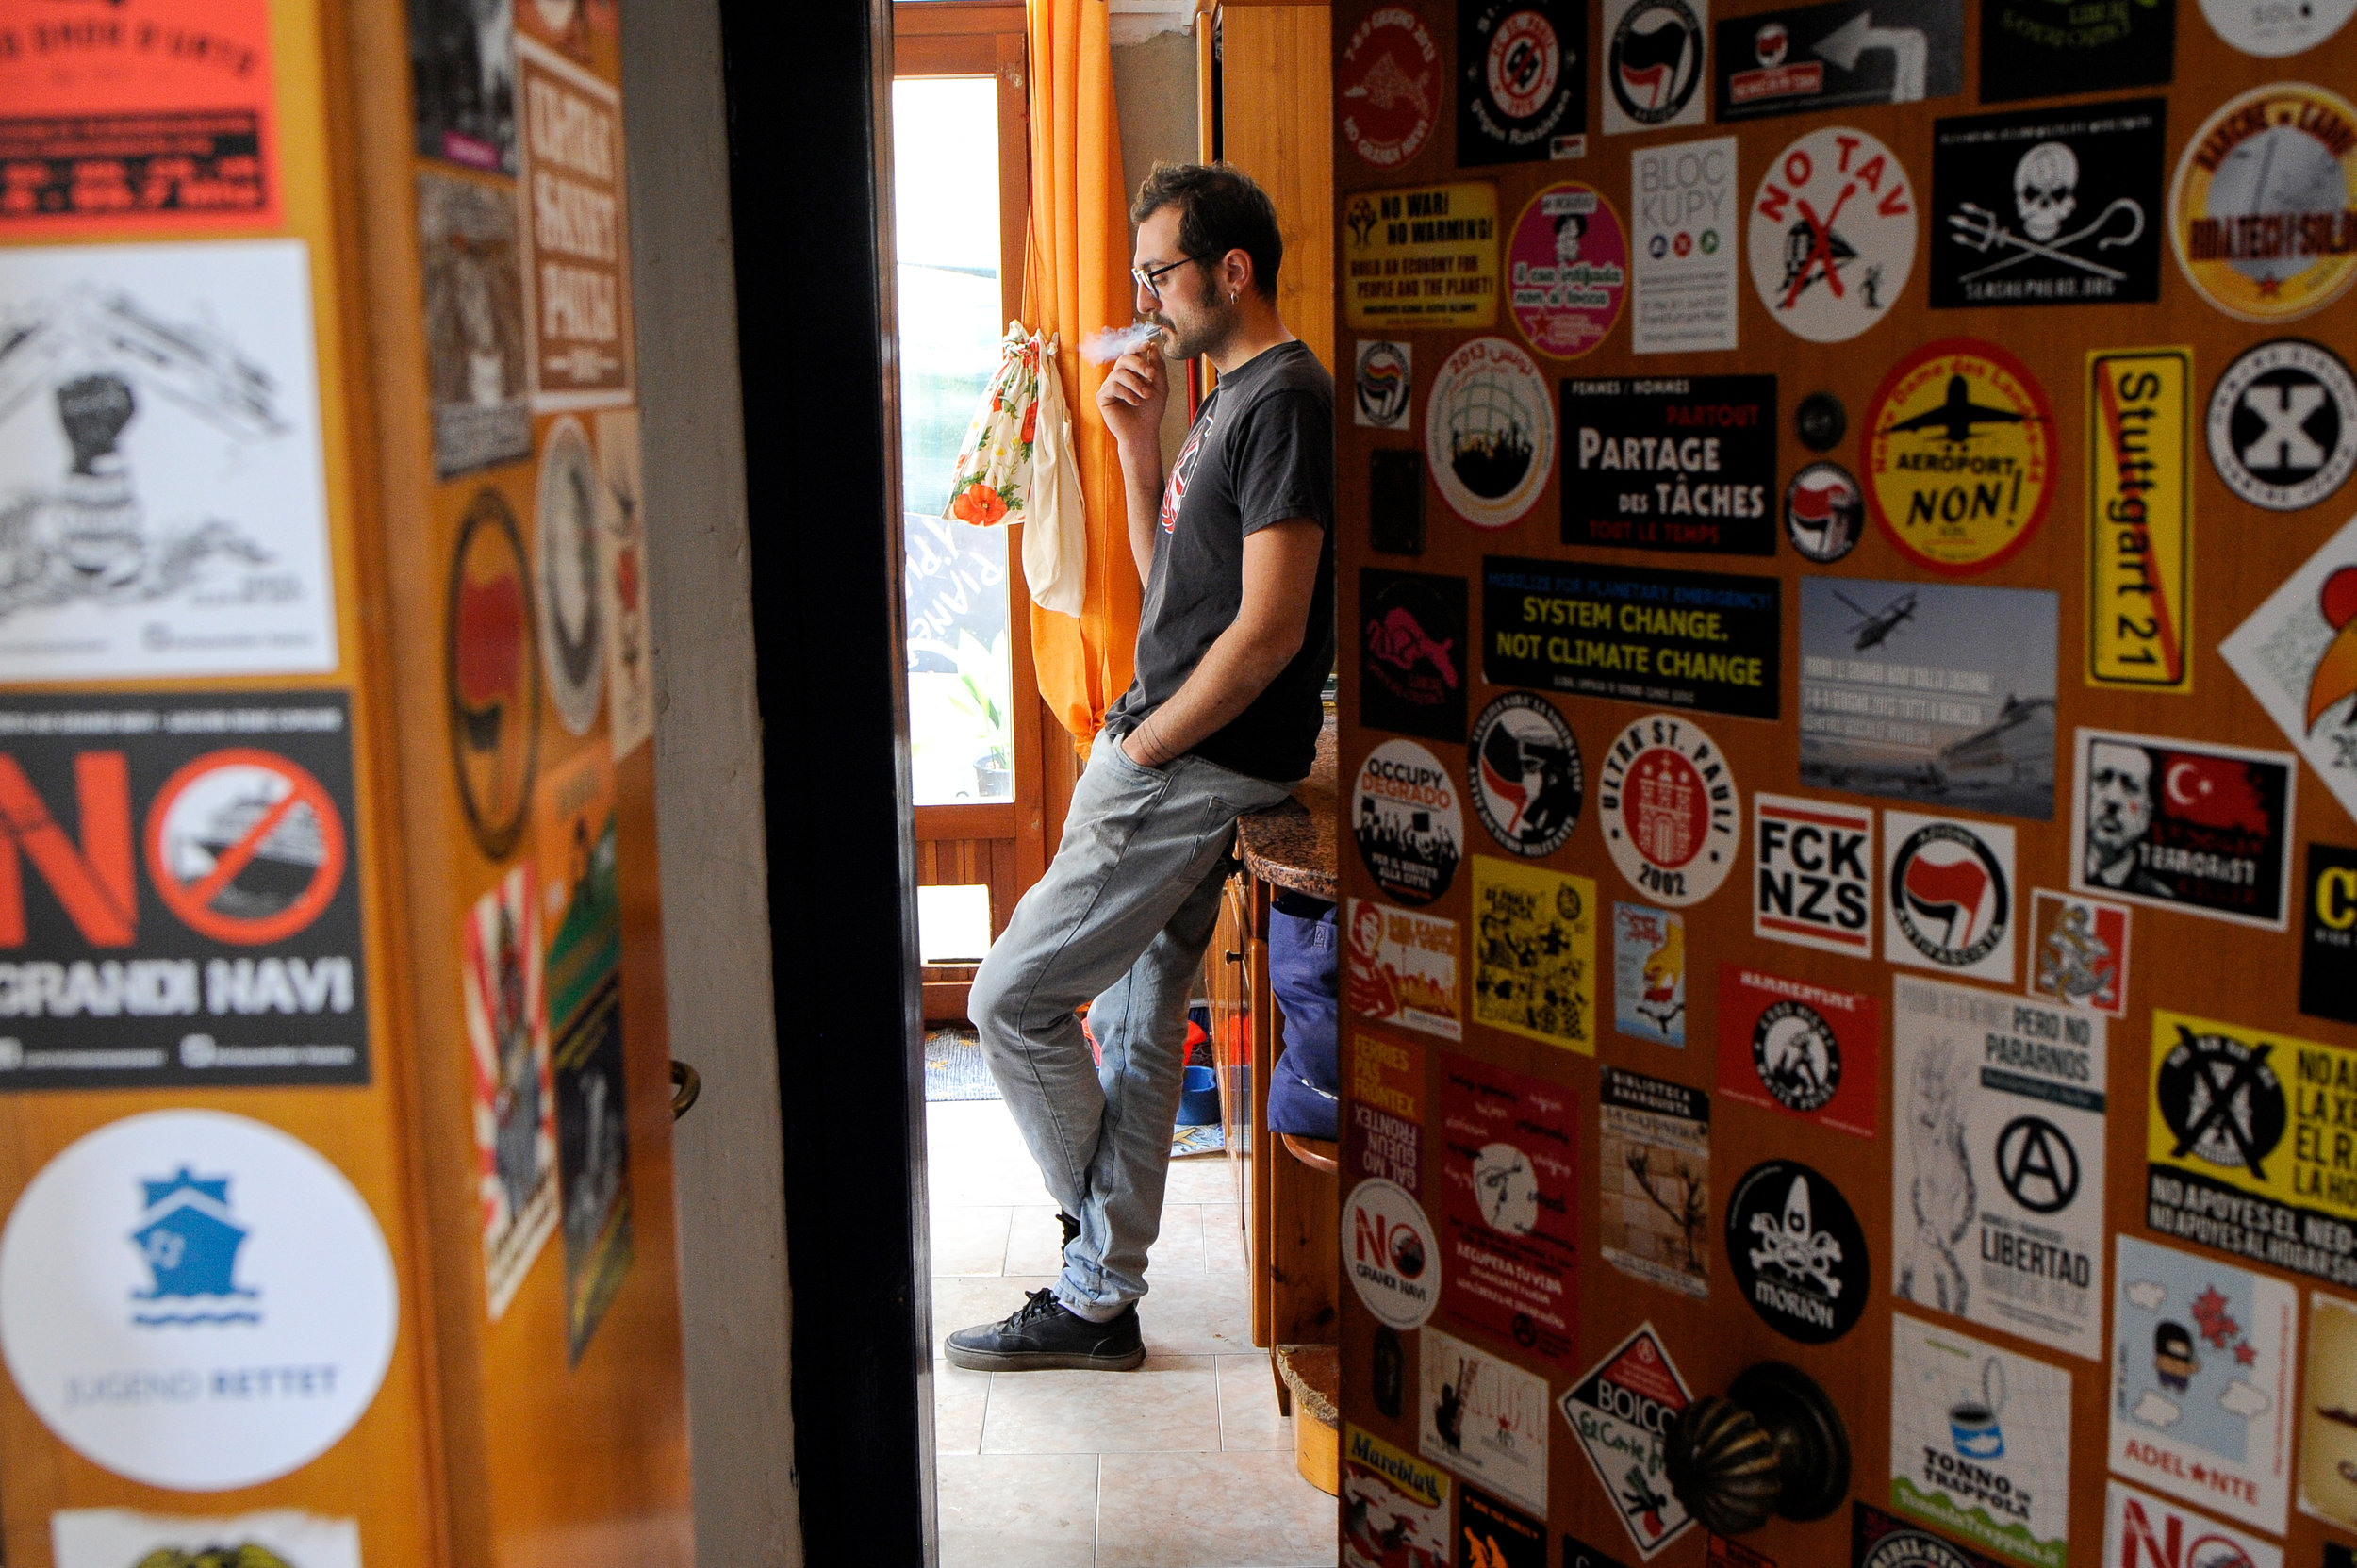 """Pasquale Ambrogio, 33, smokes a cigarette in his illegally occupied apartment in the Casette neighbourhood in Venice, Italy, April 3, 2019. """"I moved to this apartment 7 years ago. I can't afford to pay a rent in Venice but I don't want to leave the city. I consider myself a resisting citizen"""", Ambrogio said."""